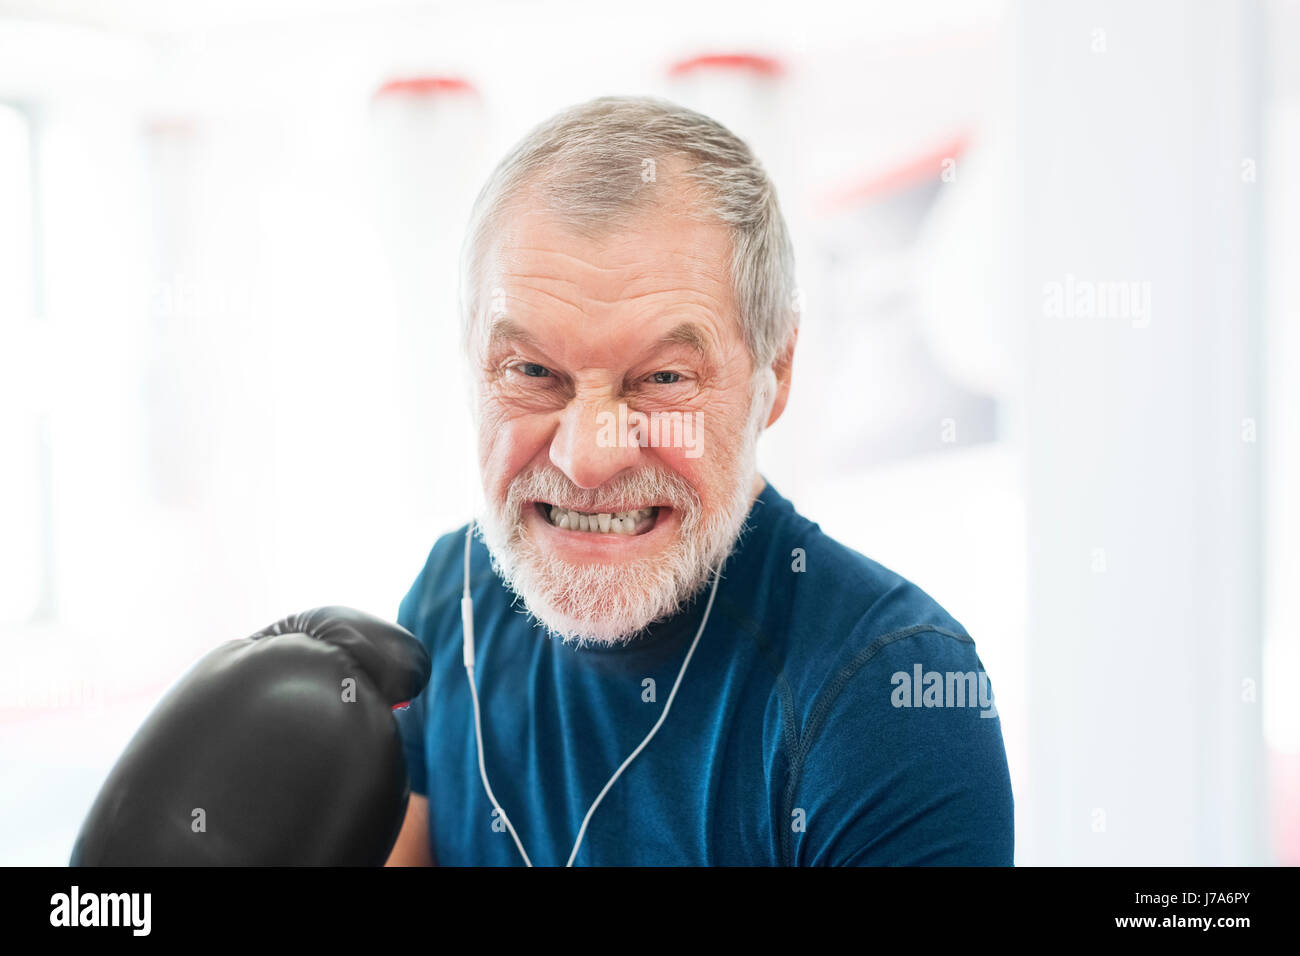 Portrait of aggressive senior man with earphones and boxing gloves in gym - Stock Image